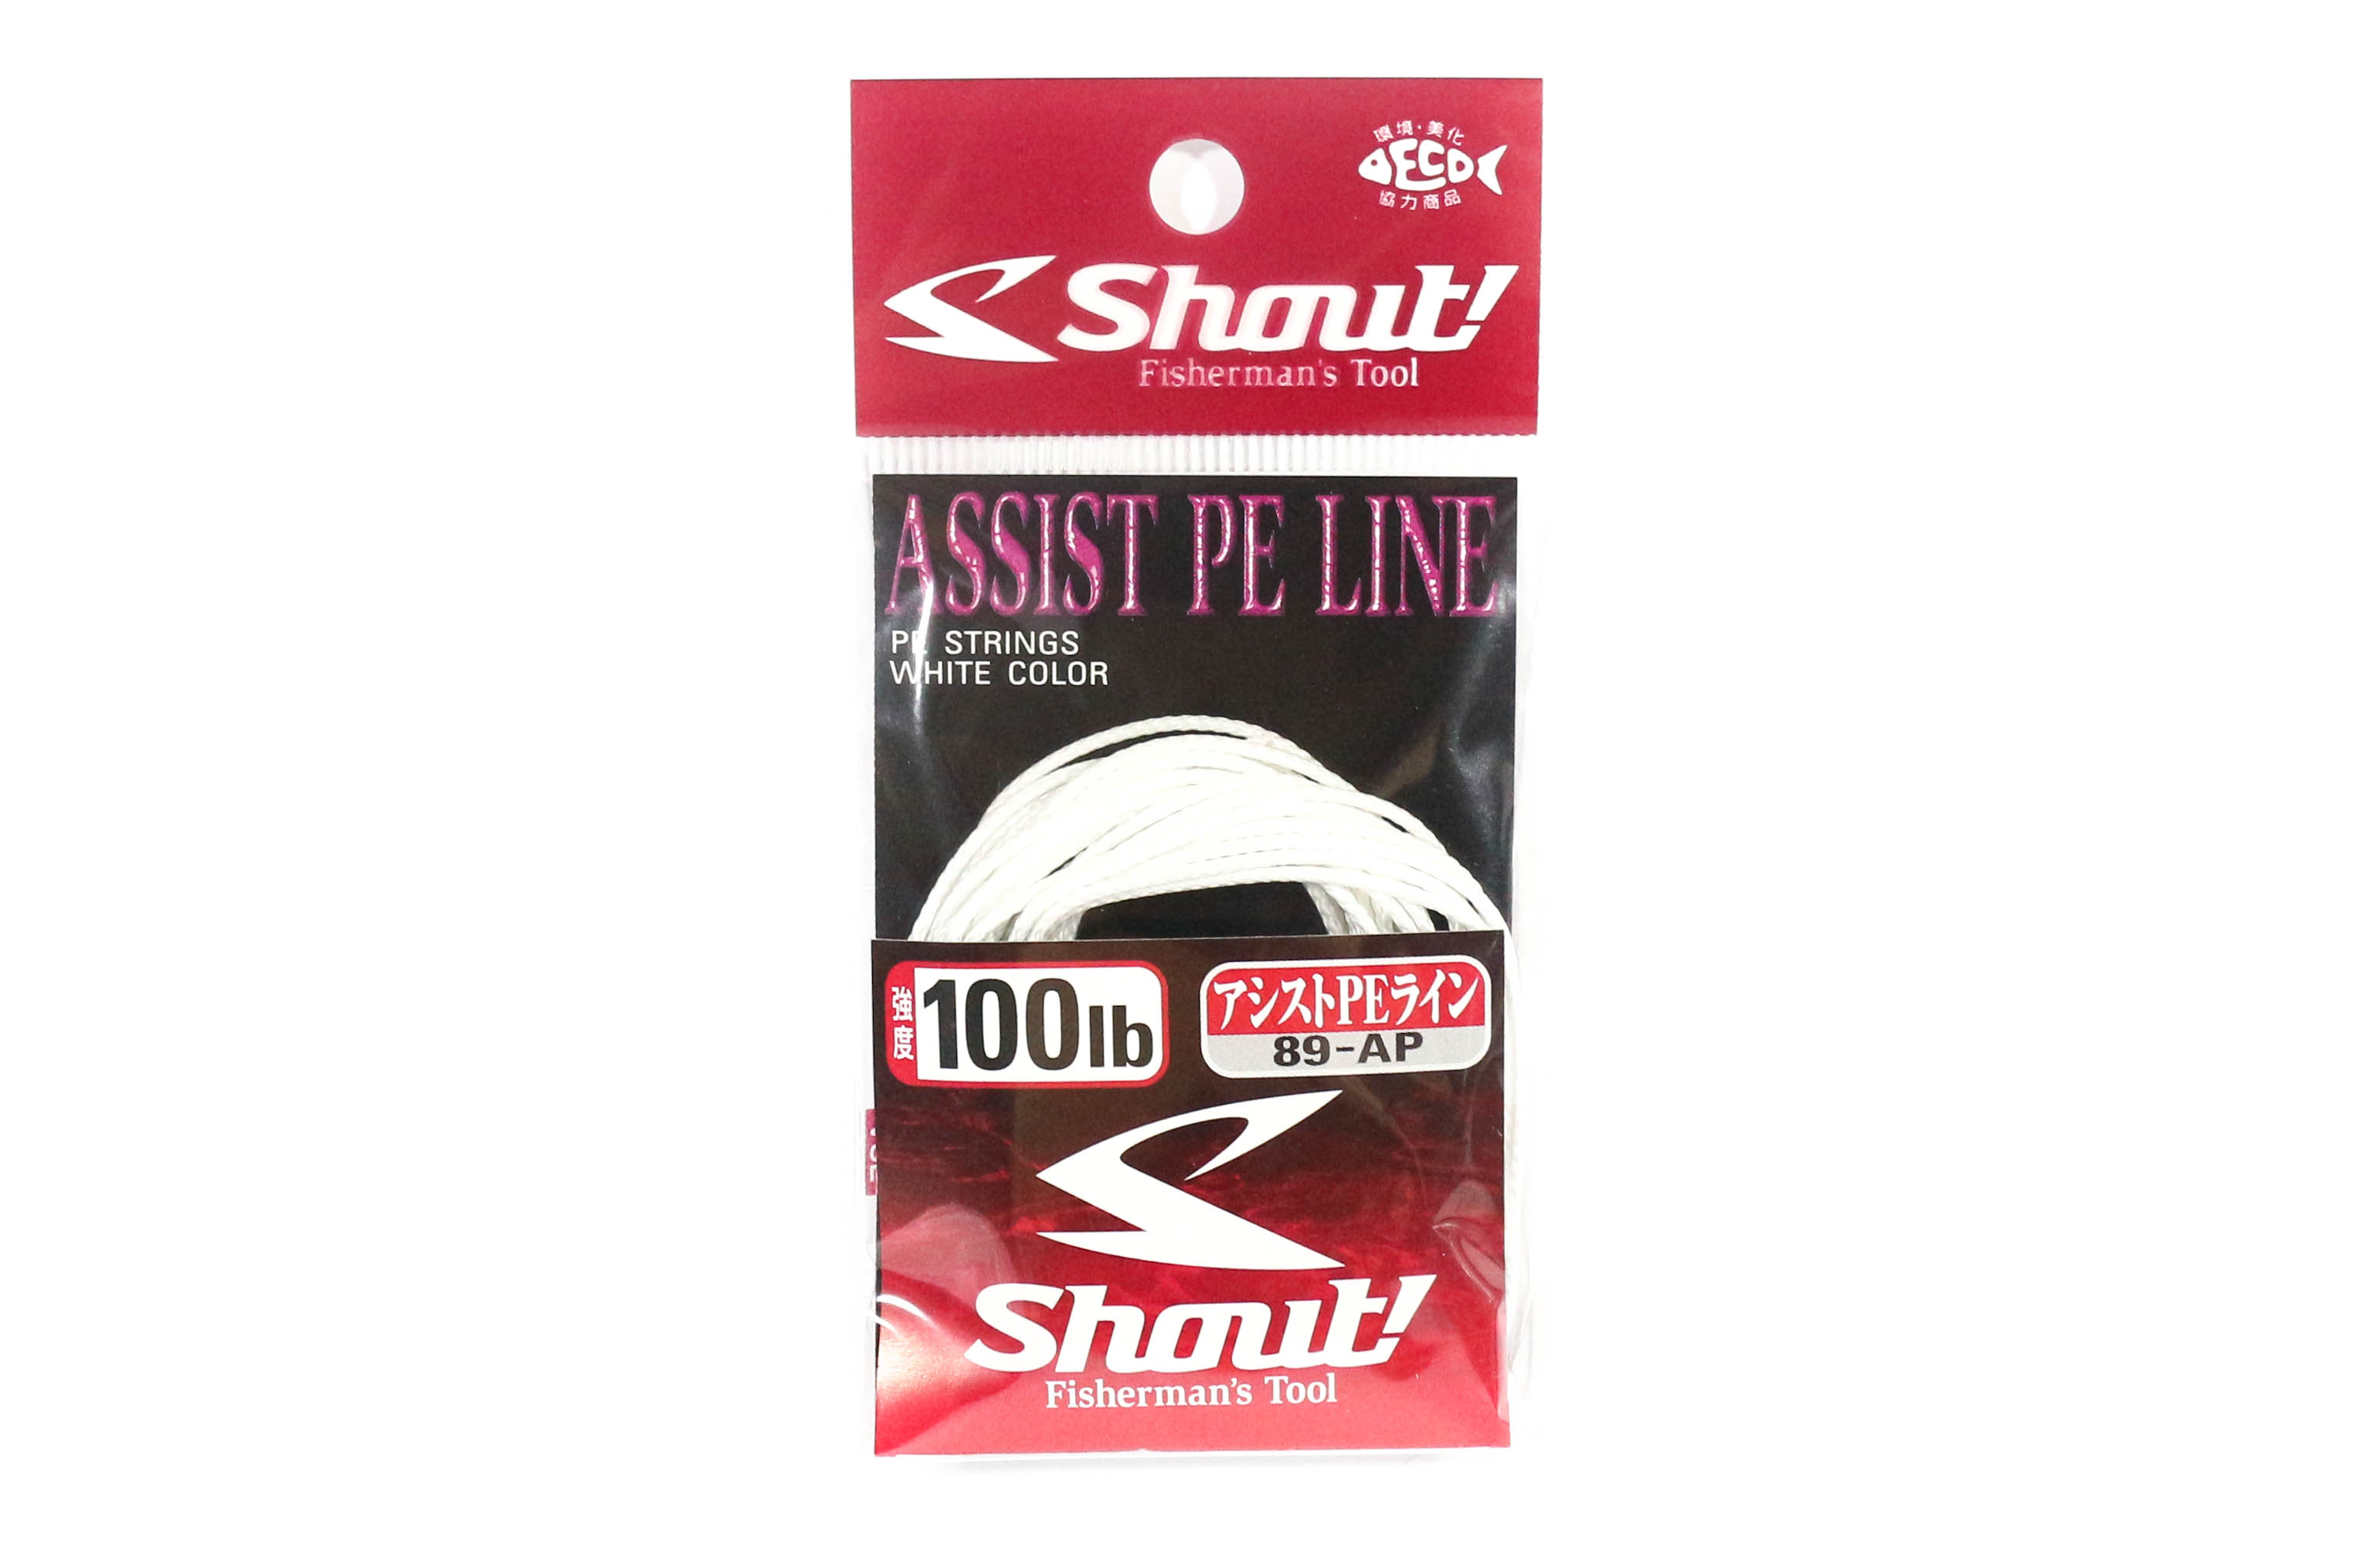 Shout 89-AP Assist P.E Line Assist Rope with Inner Core 100lb 3 meters (7150)